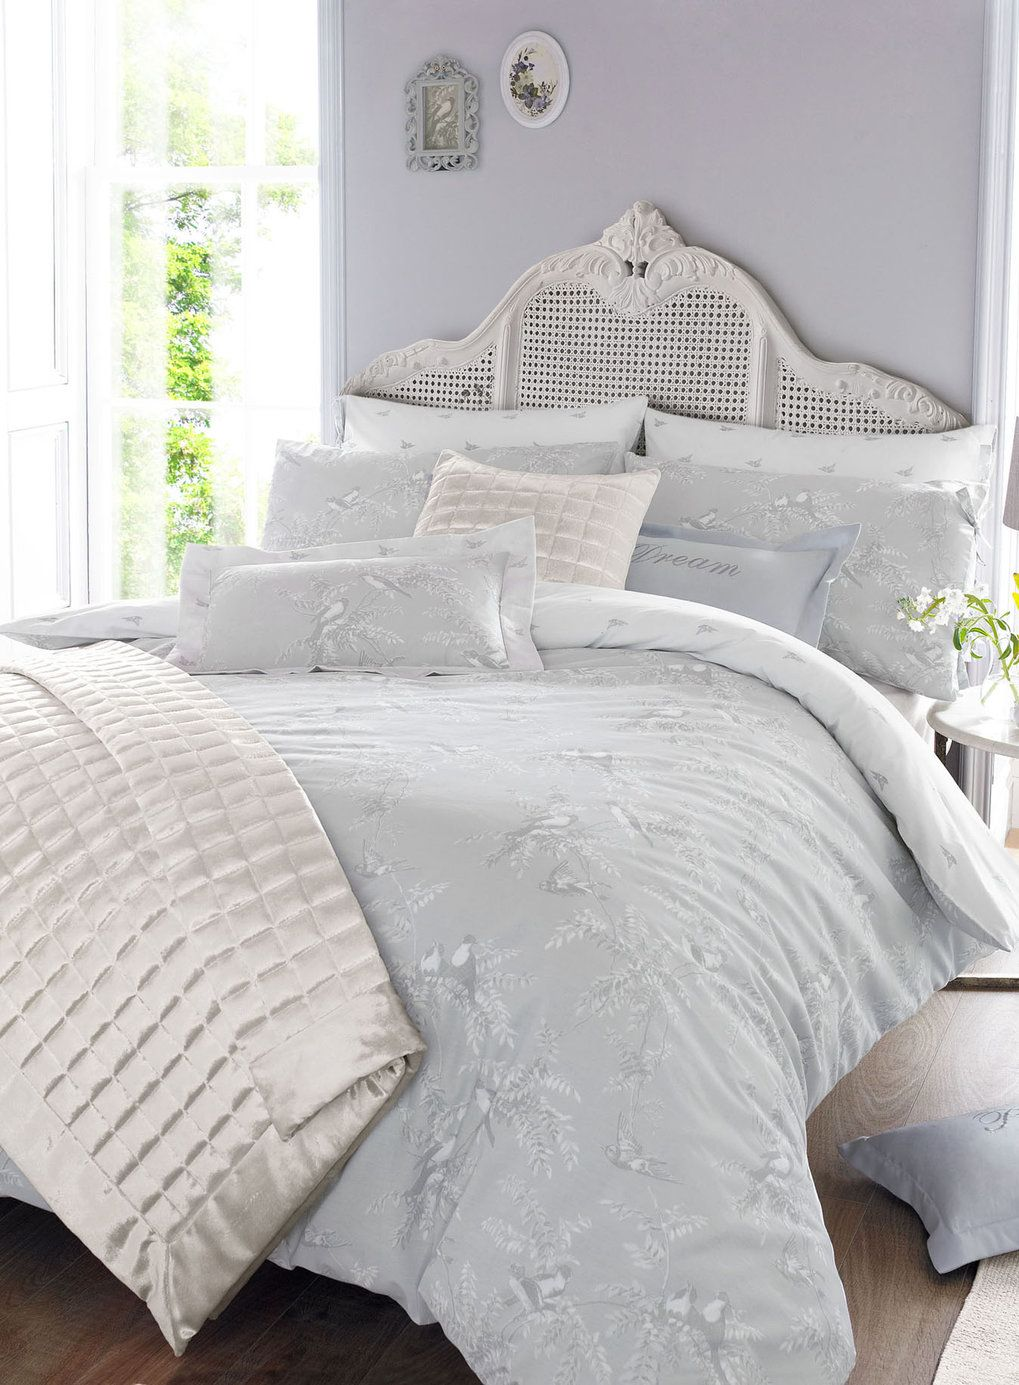 Bhs Exclusive Holly Willoughby Grey Fauna Bed Linen Range From 15